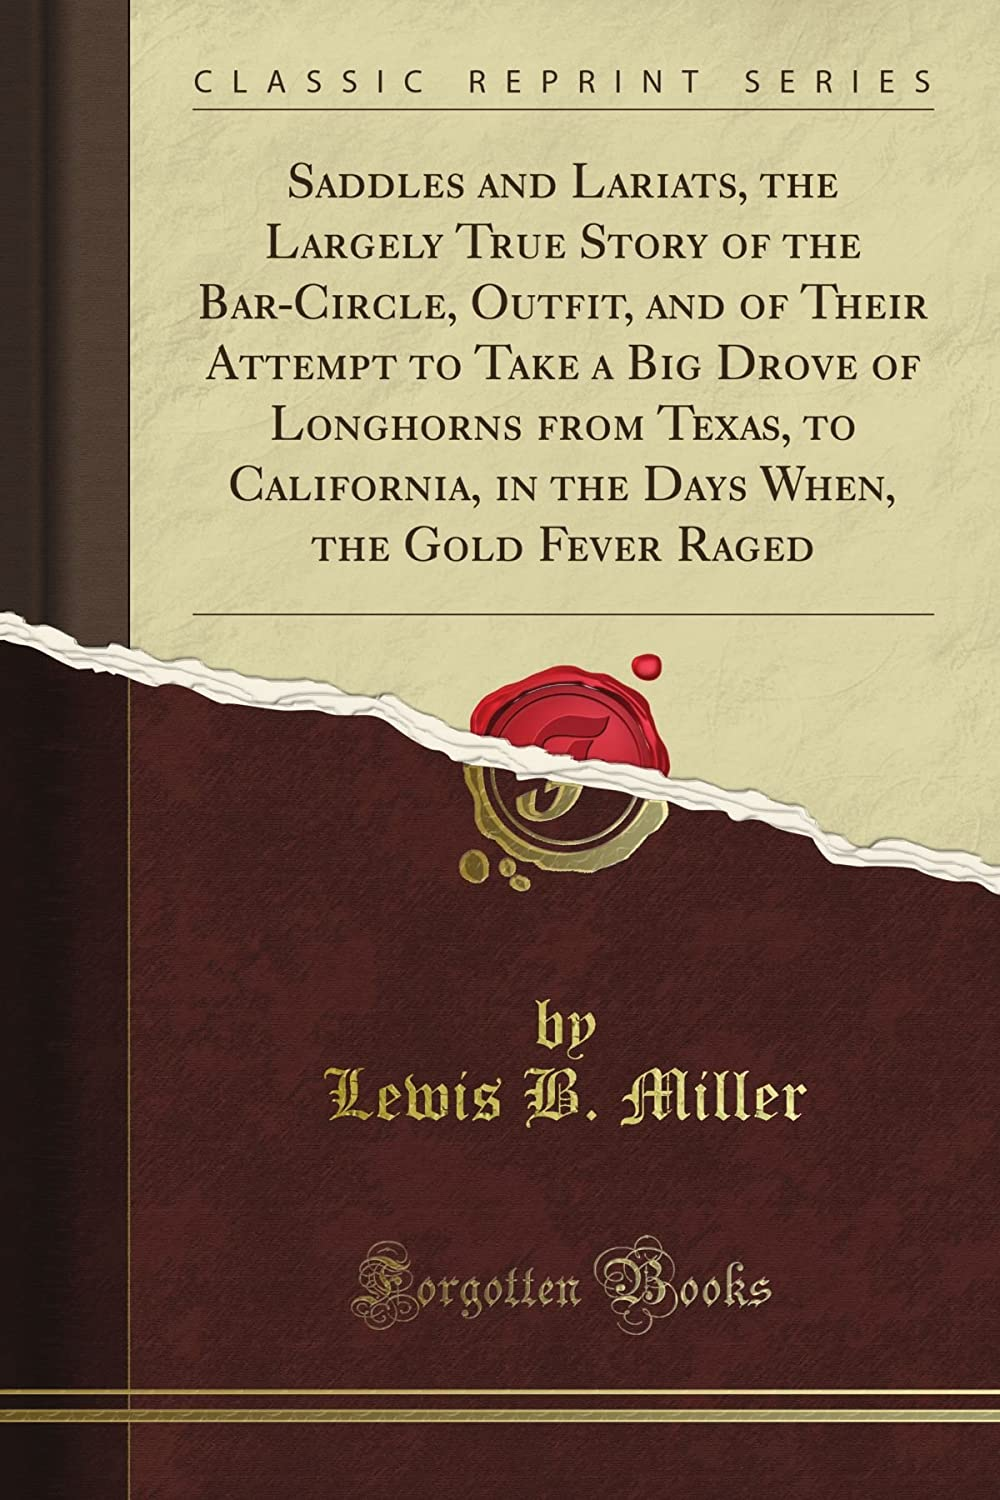 Saddles and Lariats, the Largely True Story of the Bar-Circle, Outfit, and of Their Attempt to Take a Big Drove of Longhorns from Texas, to California, in the Days When, the Gold Fever Raged (Classic Reprint)